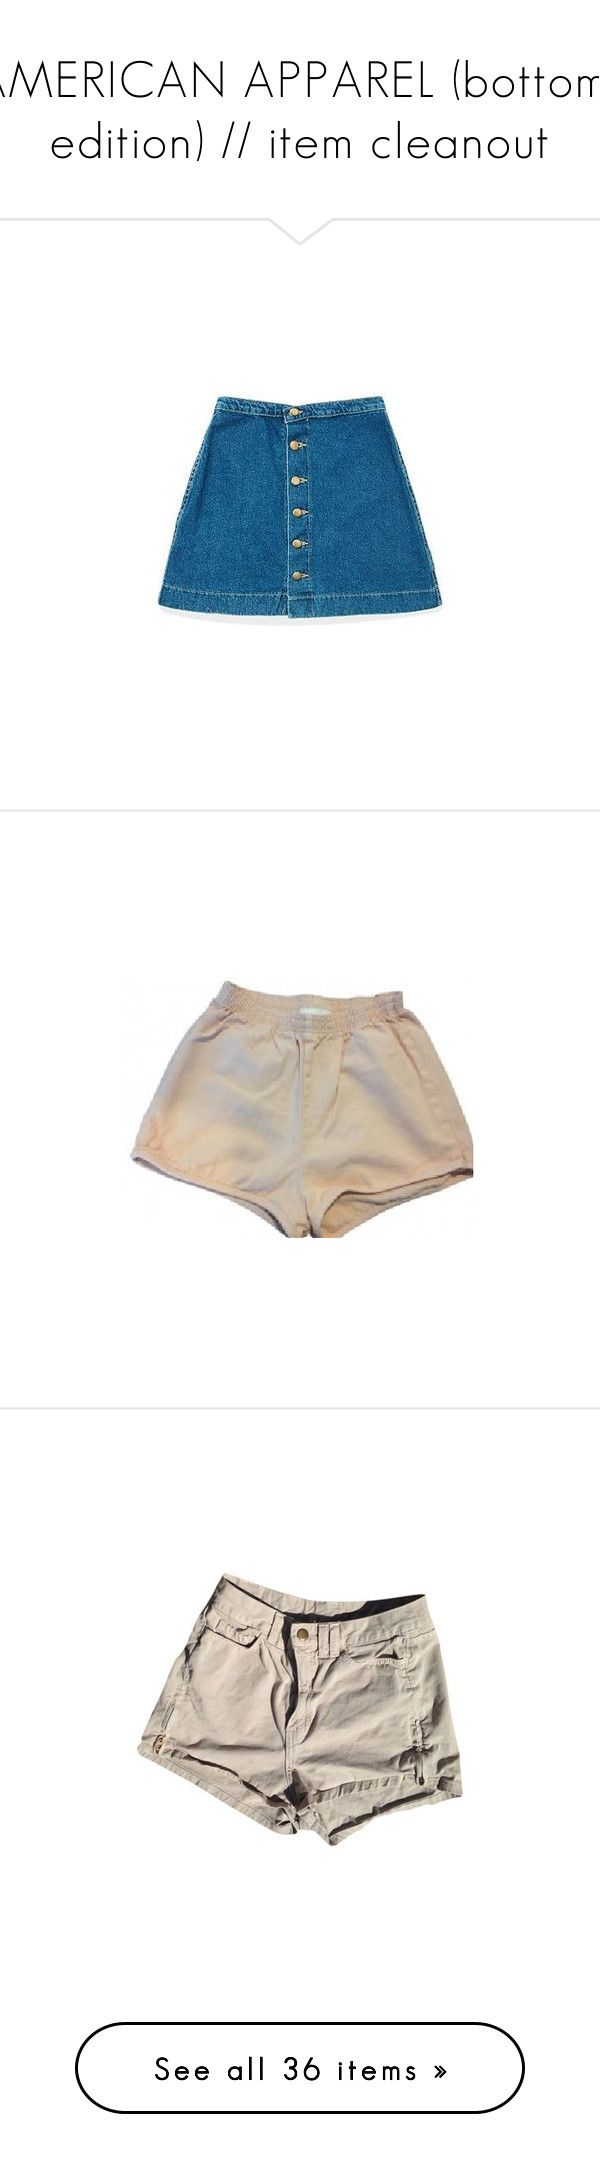 """""""AMERICAN APPAREL (bottoms edition) // item cleanout"""" by kphxn ❤ liked on Polyvore featuring kphxnCOLLECTS, skirts, shorts, summer shorts, american apparel shorts, stretch waist shorts, american apparel, elastic waist shorts, american high waisted shorts and high rise shorts"""